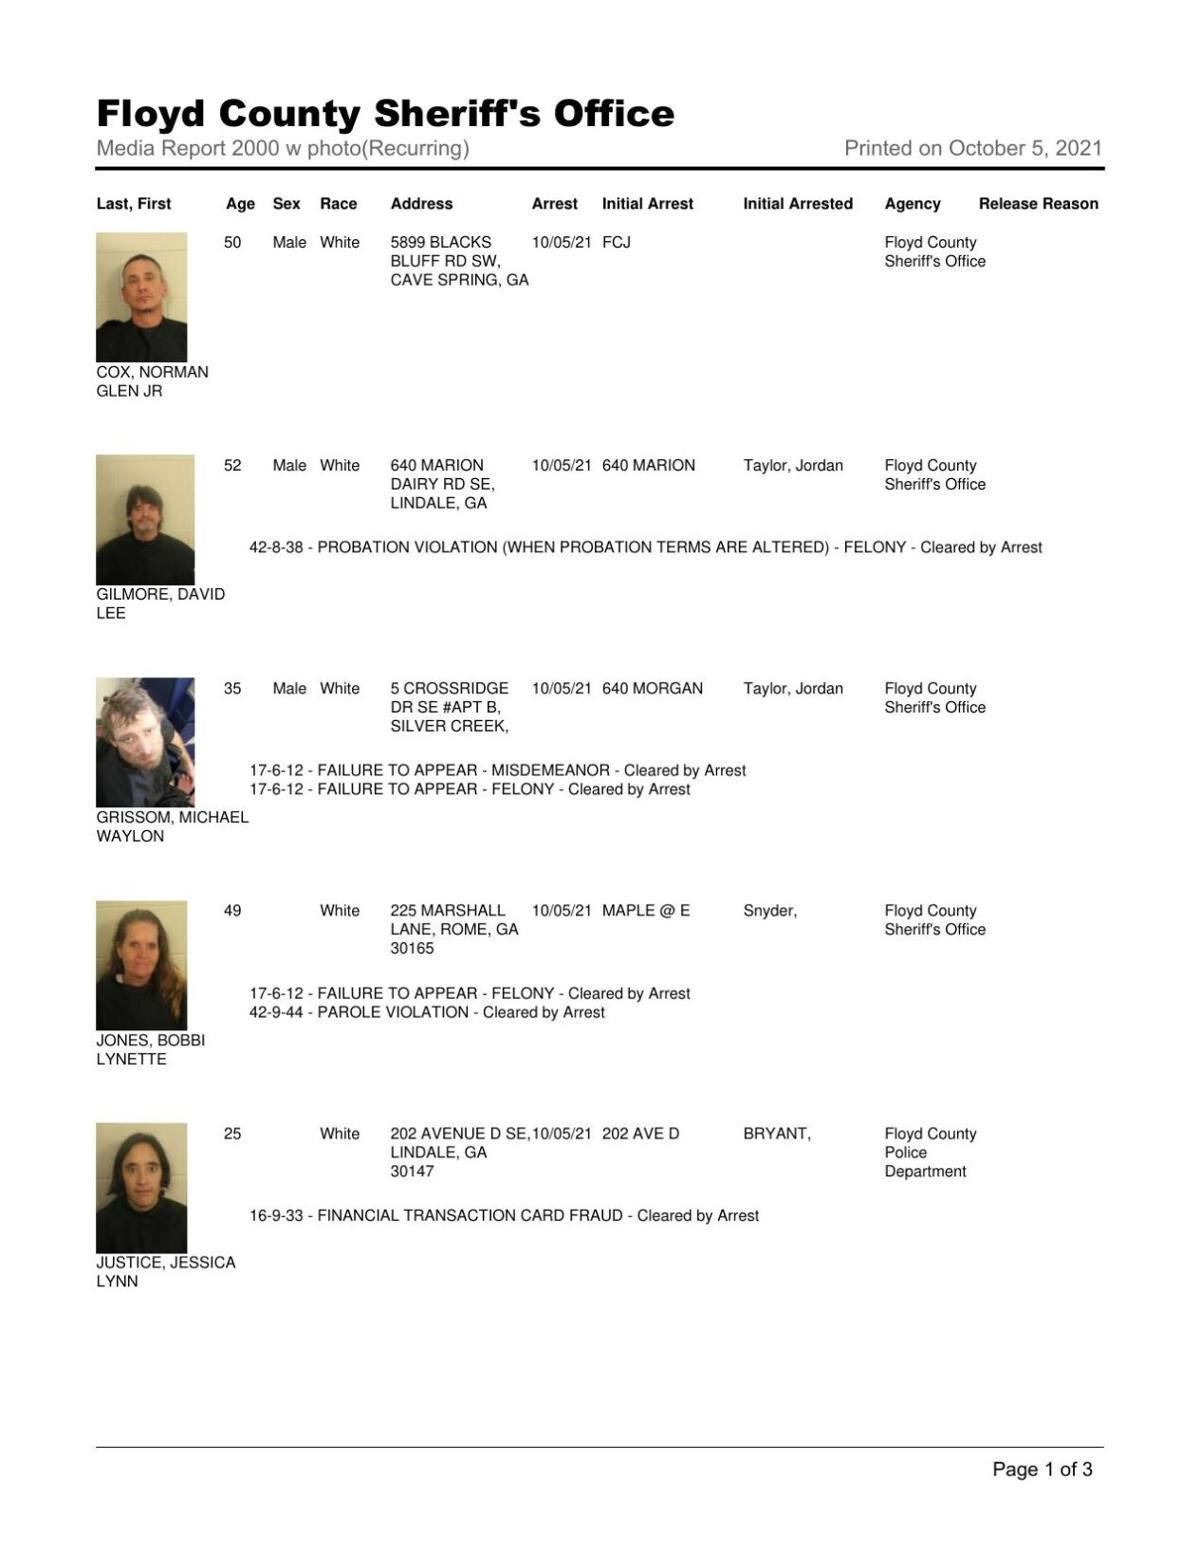 Floyd County Jail report for 8 pm Tuesday, Oct. 5